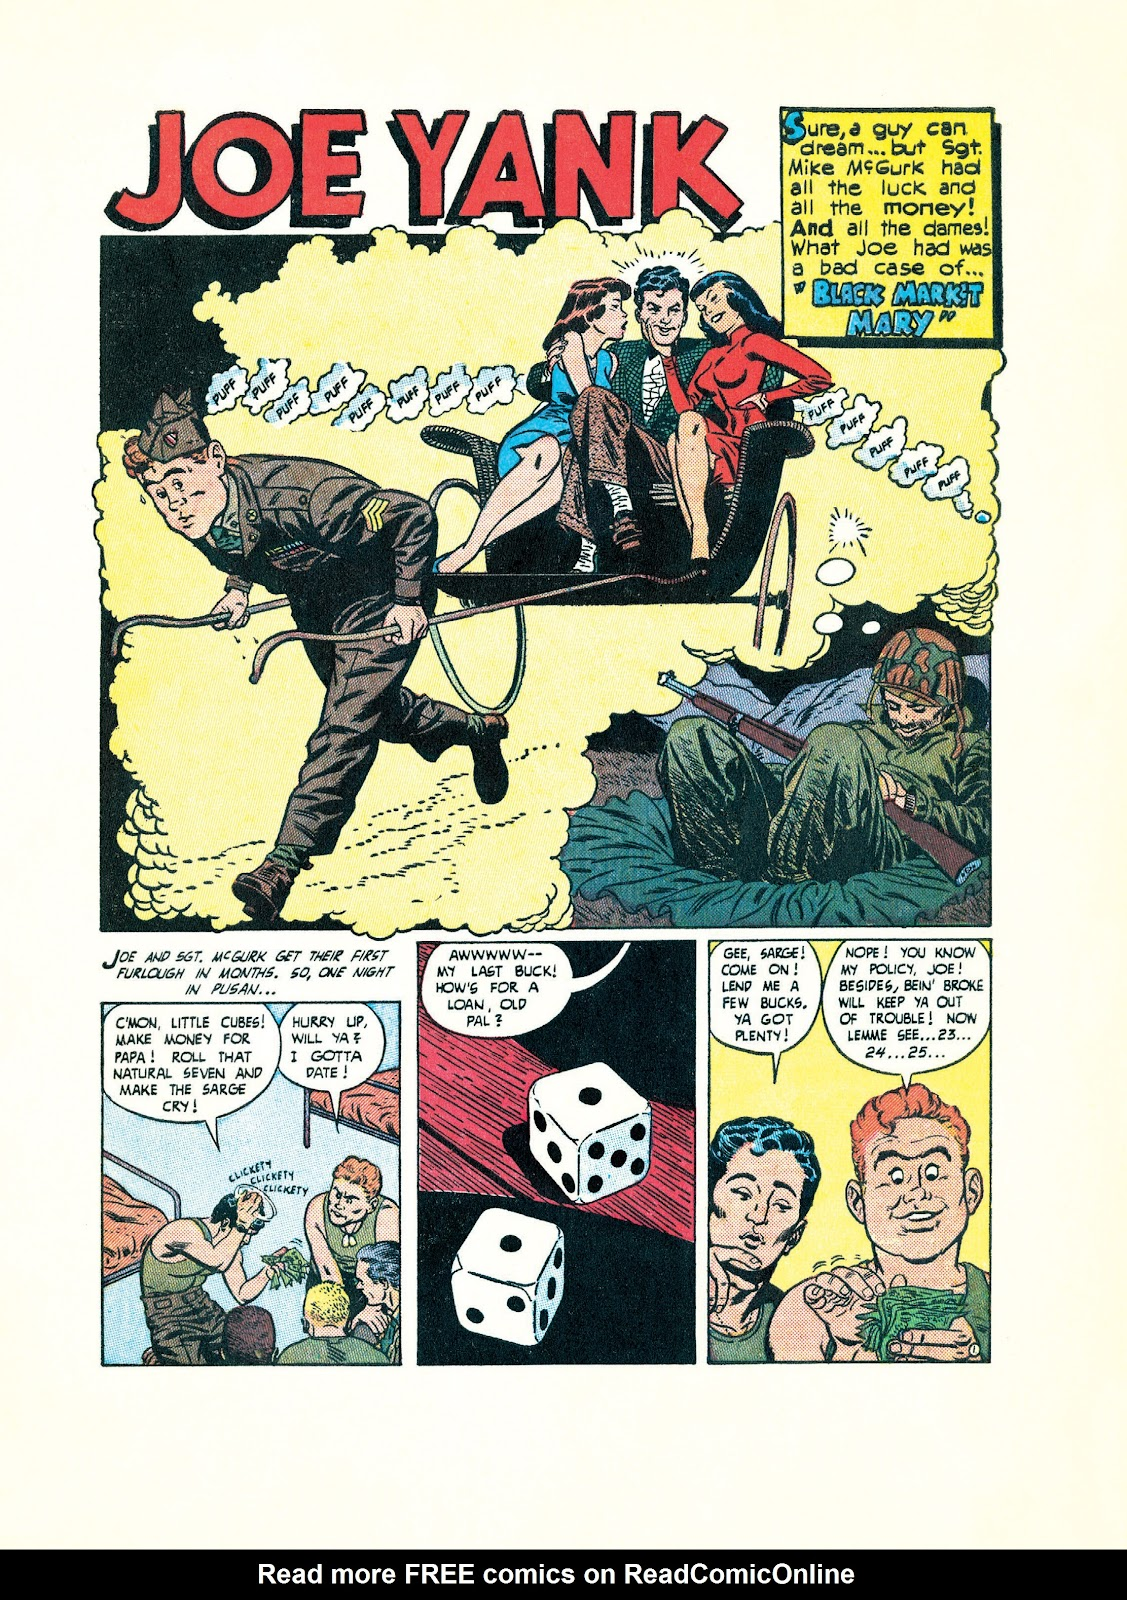 Read online Setting the Standard: Comics by Alex Toth 1952-1954 comic -  Issue # TPB (Part 1) - 39